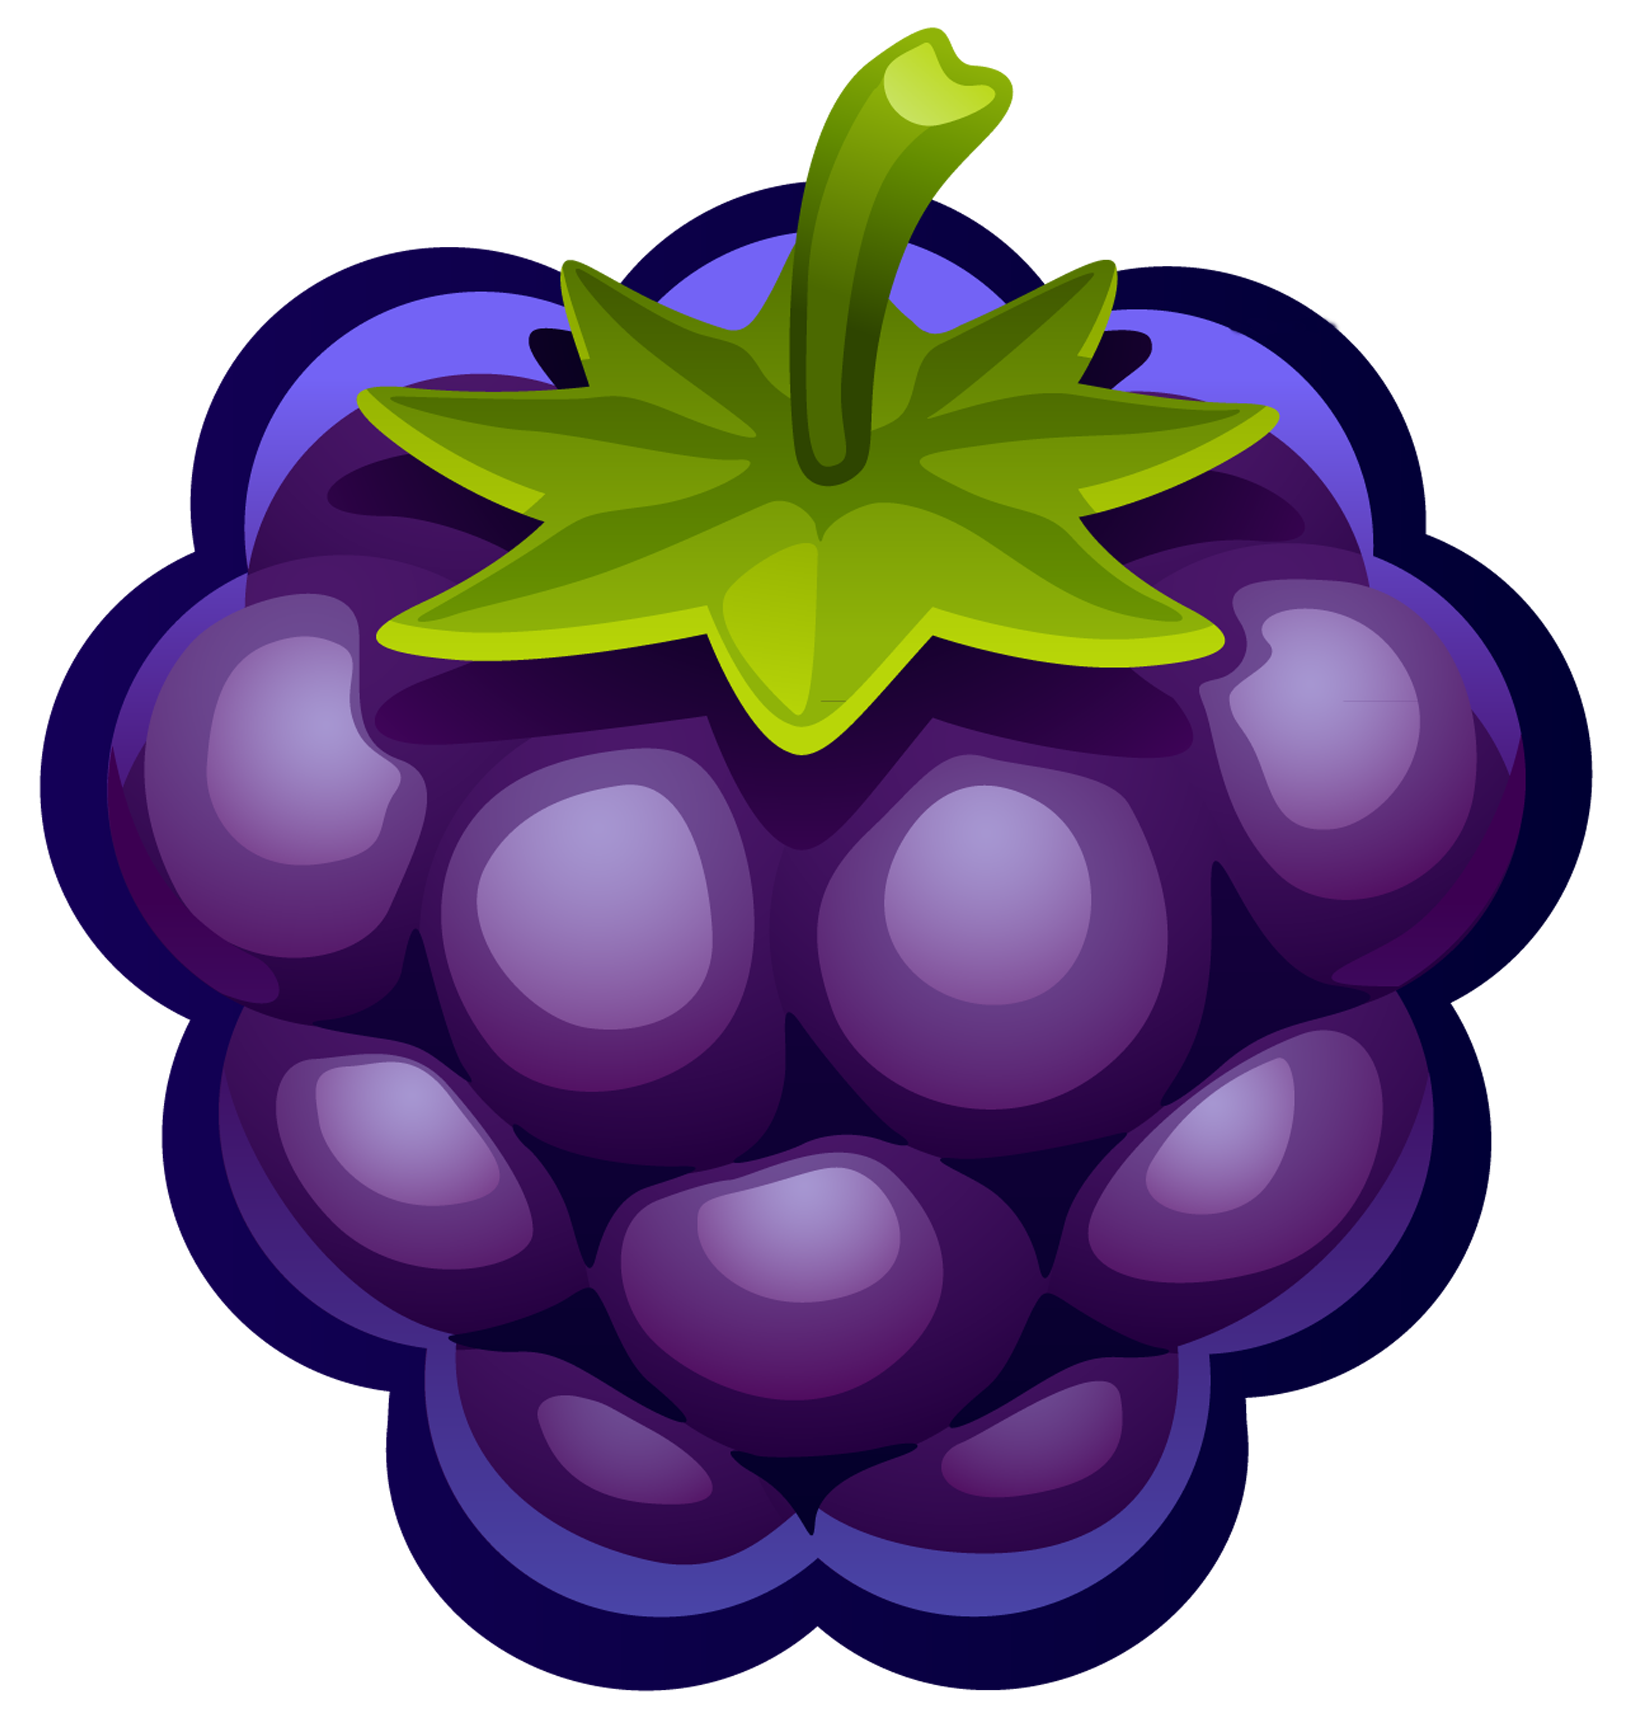 Grapes clipart painted. Large blueberry png gallery